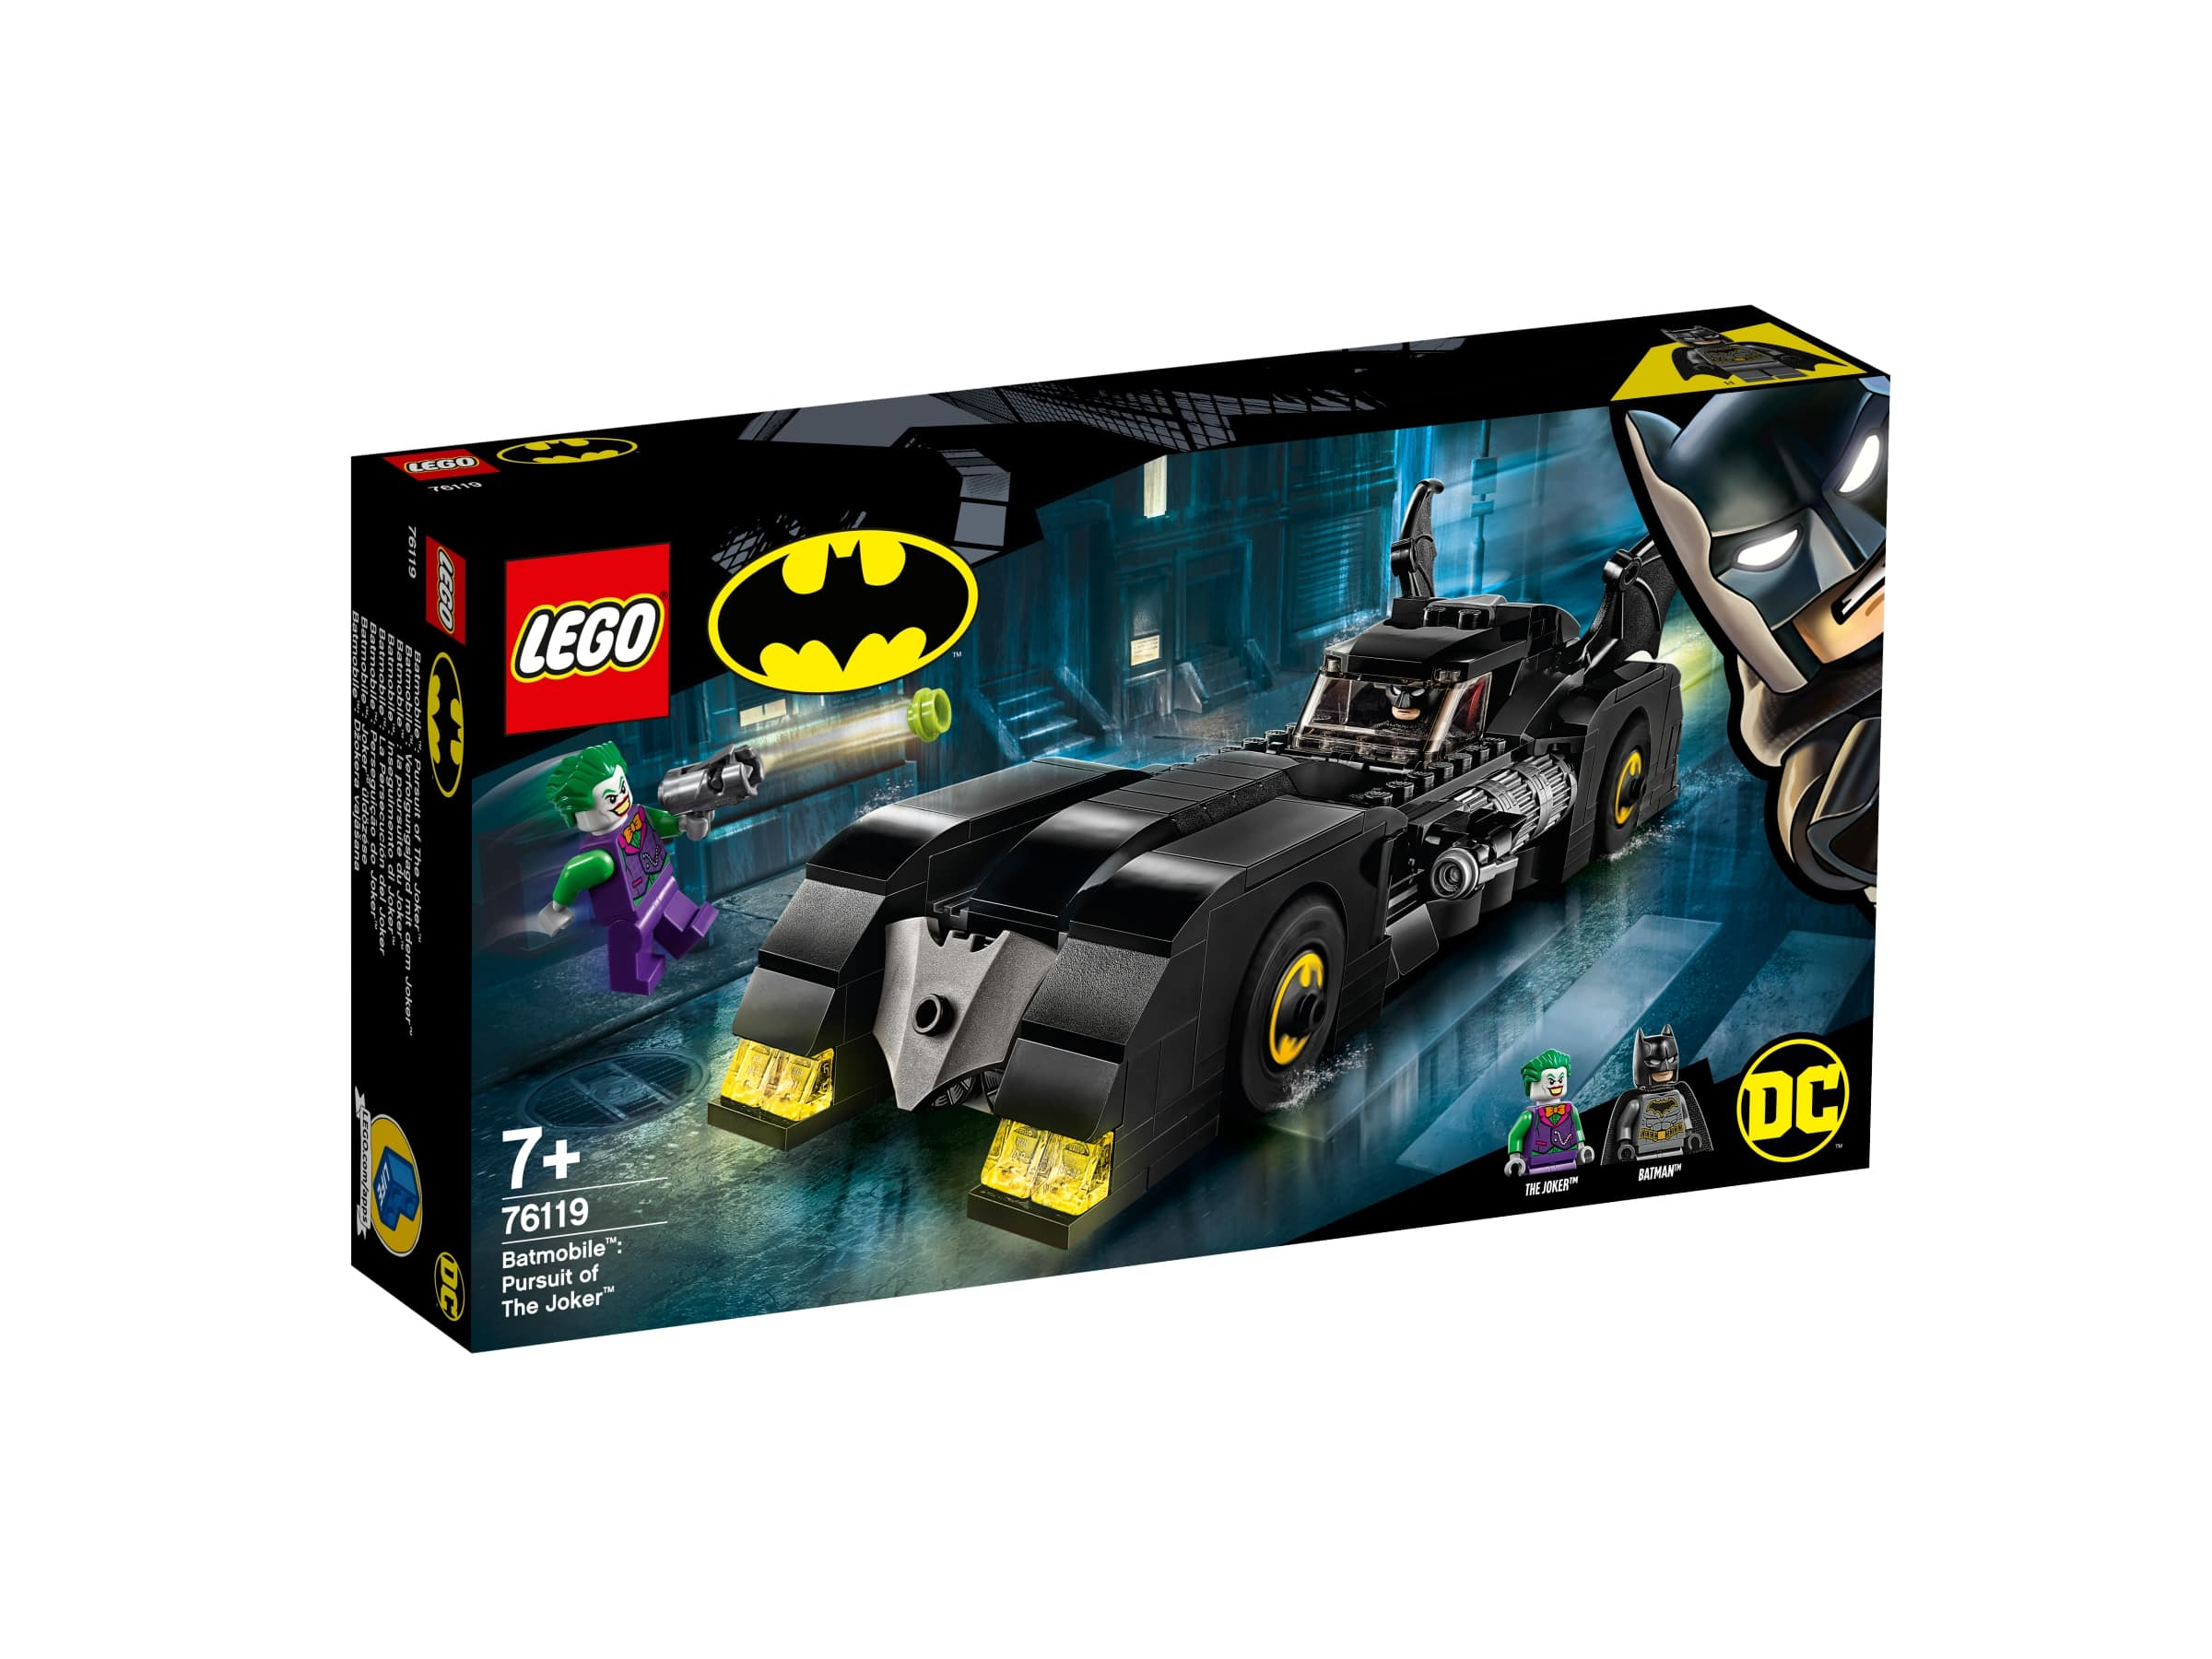 LEGO® Batman Movie Batmobile™: pronásledování Jokera